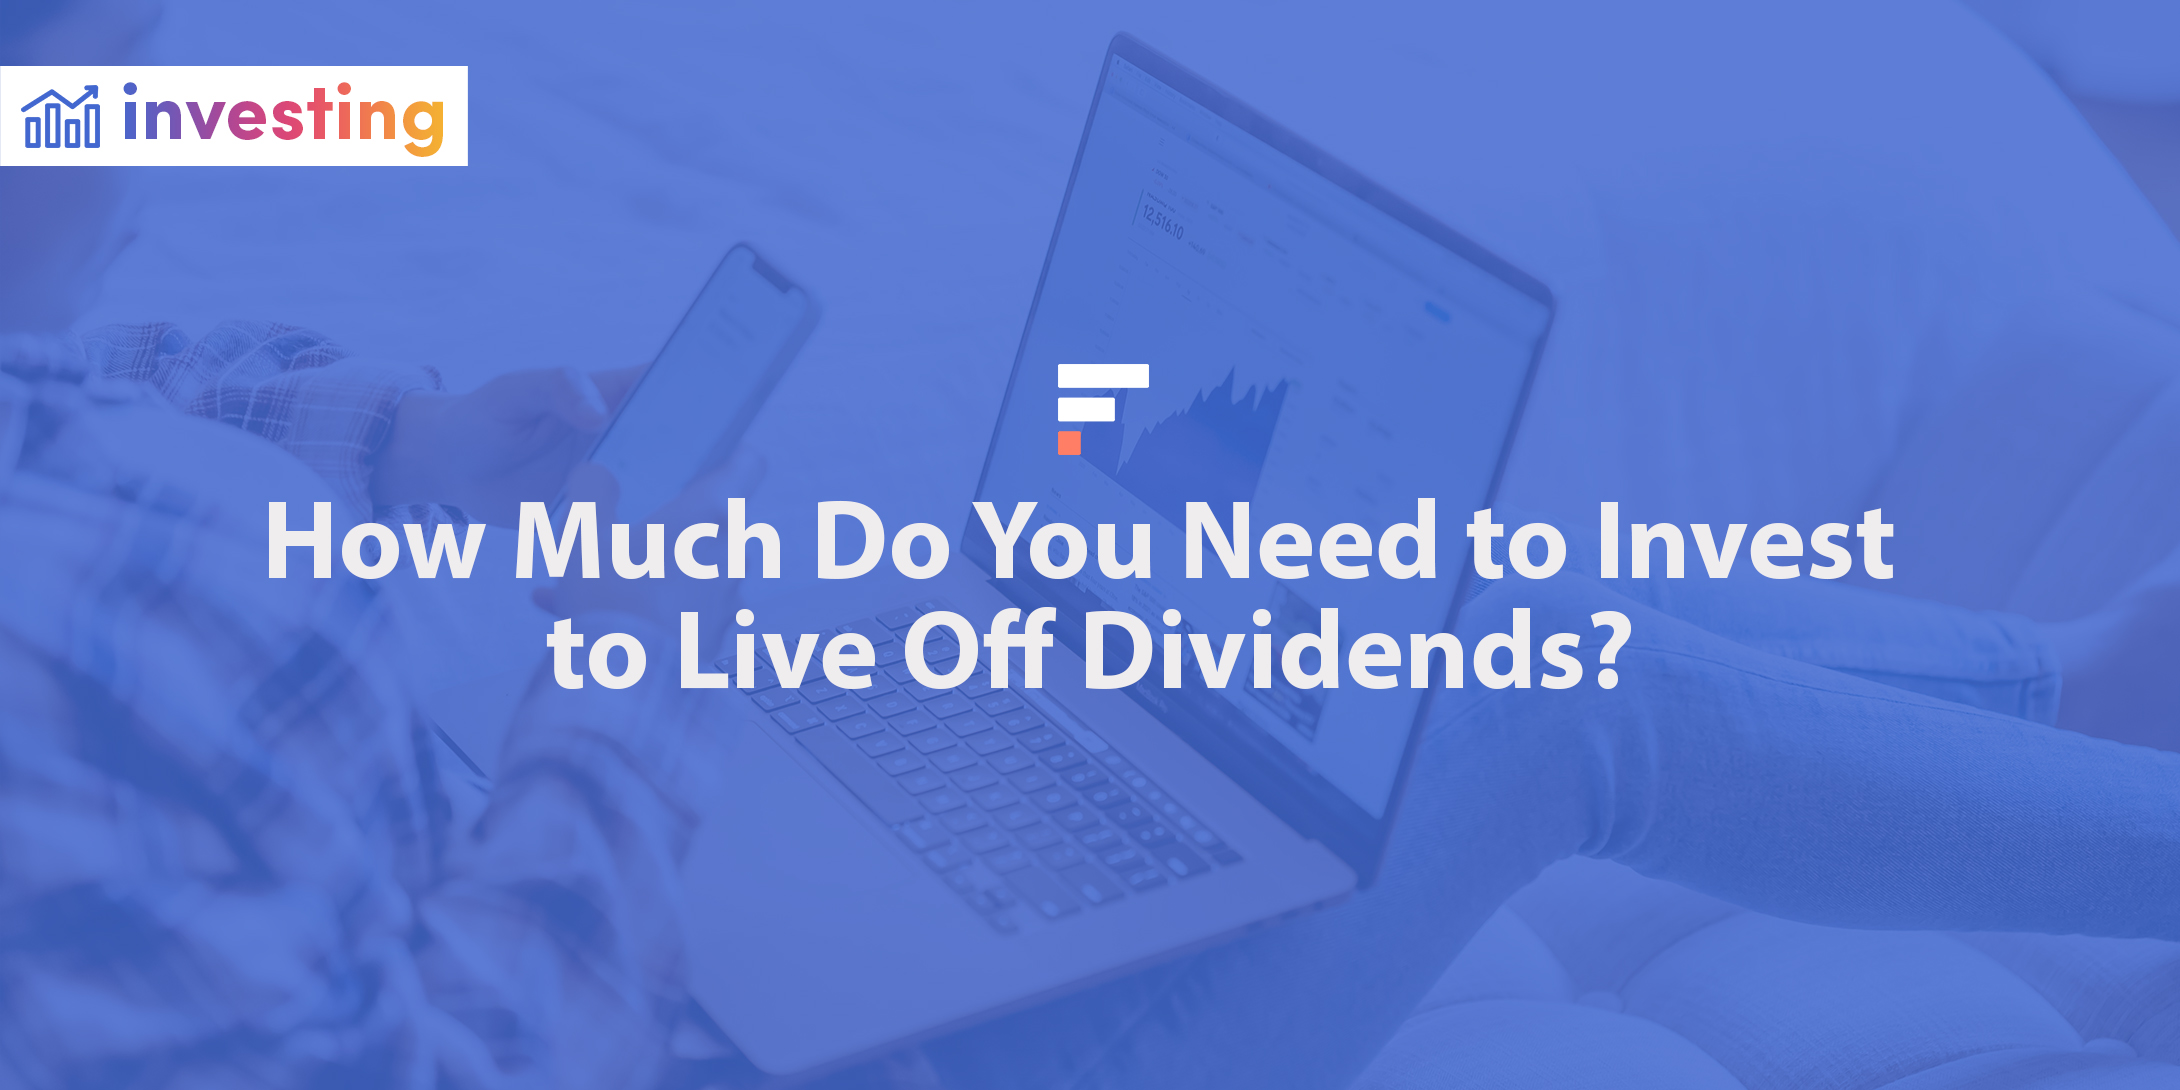 How much do you need to invest to live off dividends?